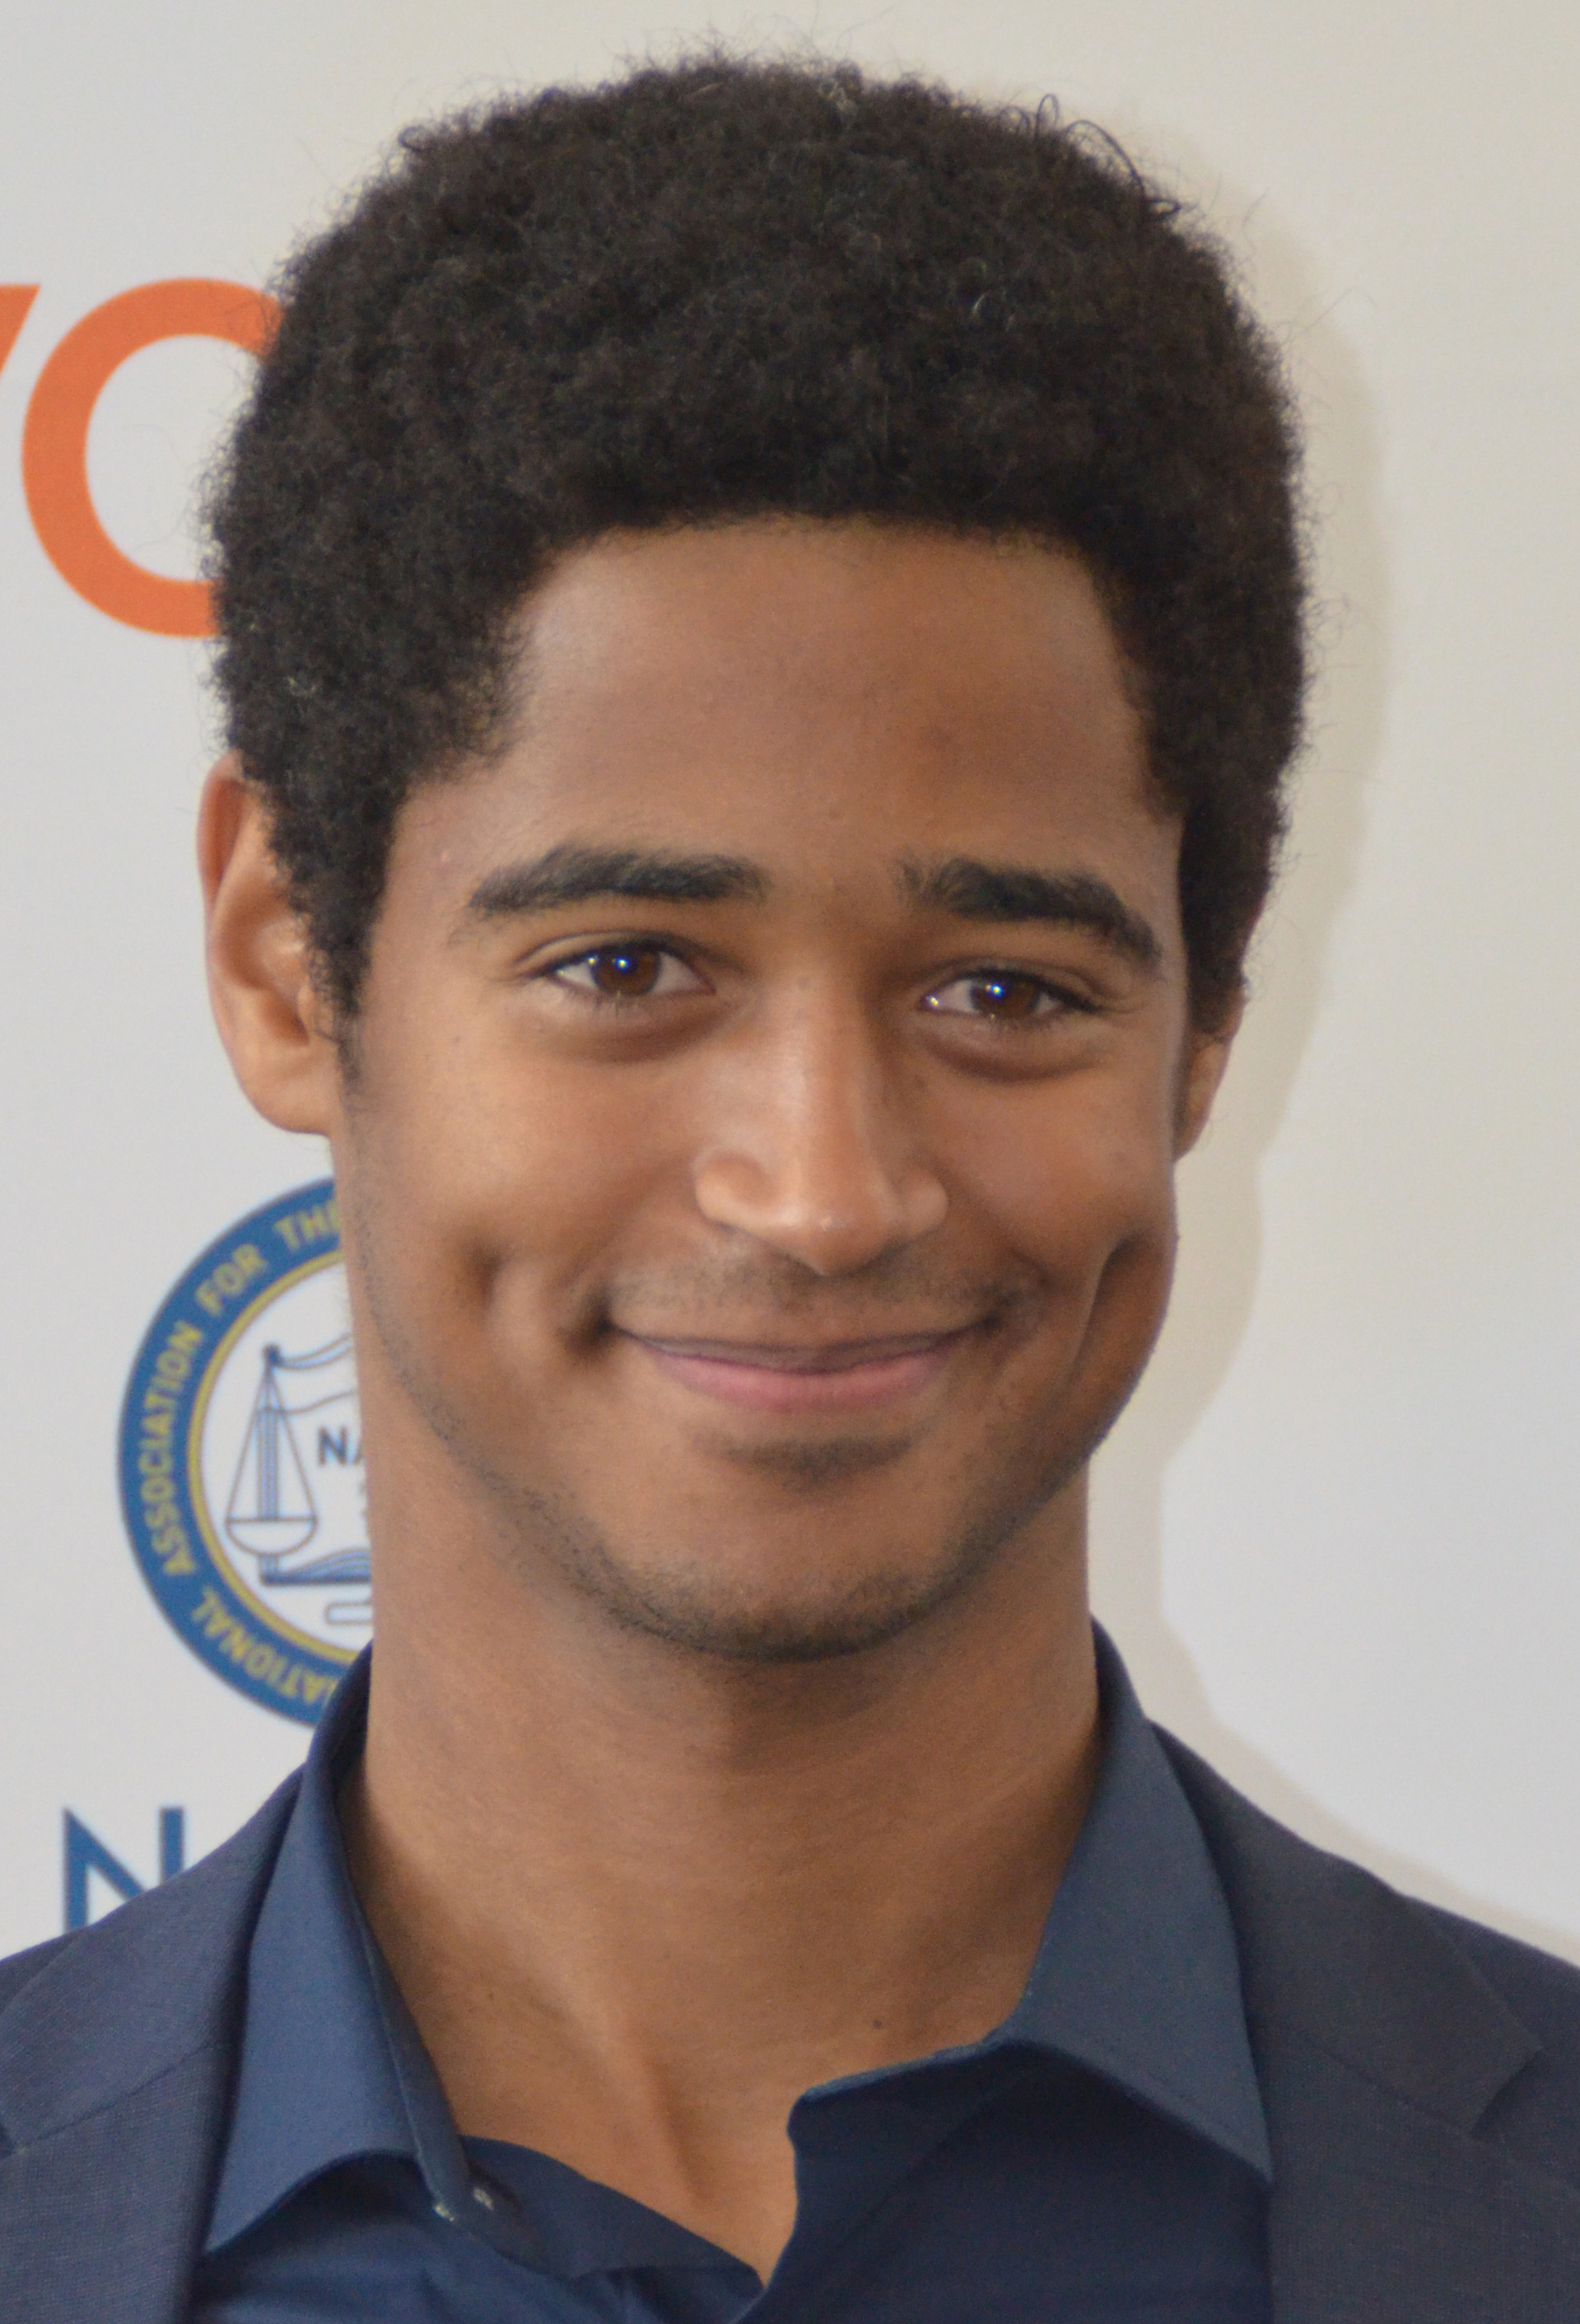 The 29-year old son of father William Russell and mother Balbina Gutierrez Russell Alfred Enoch in 2018 photo. Alfred Enoch earned a  million dollar salary - leaving the net worth at 3 million in 2018